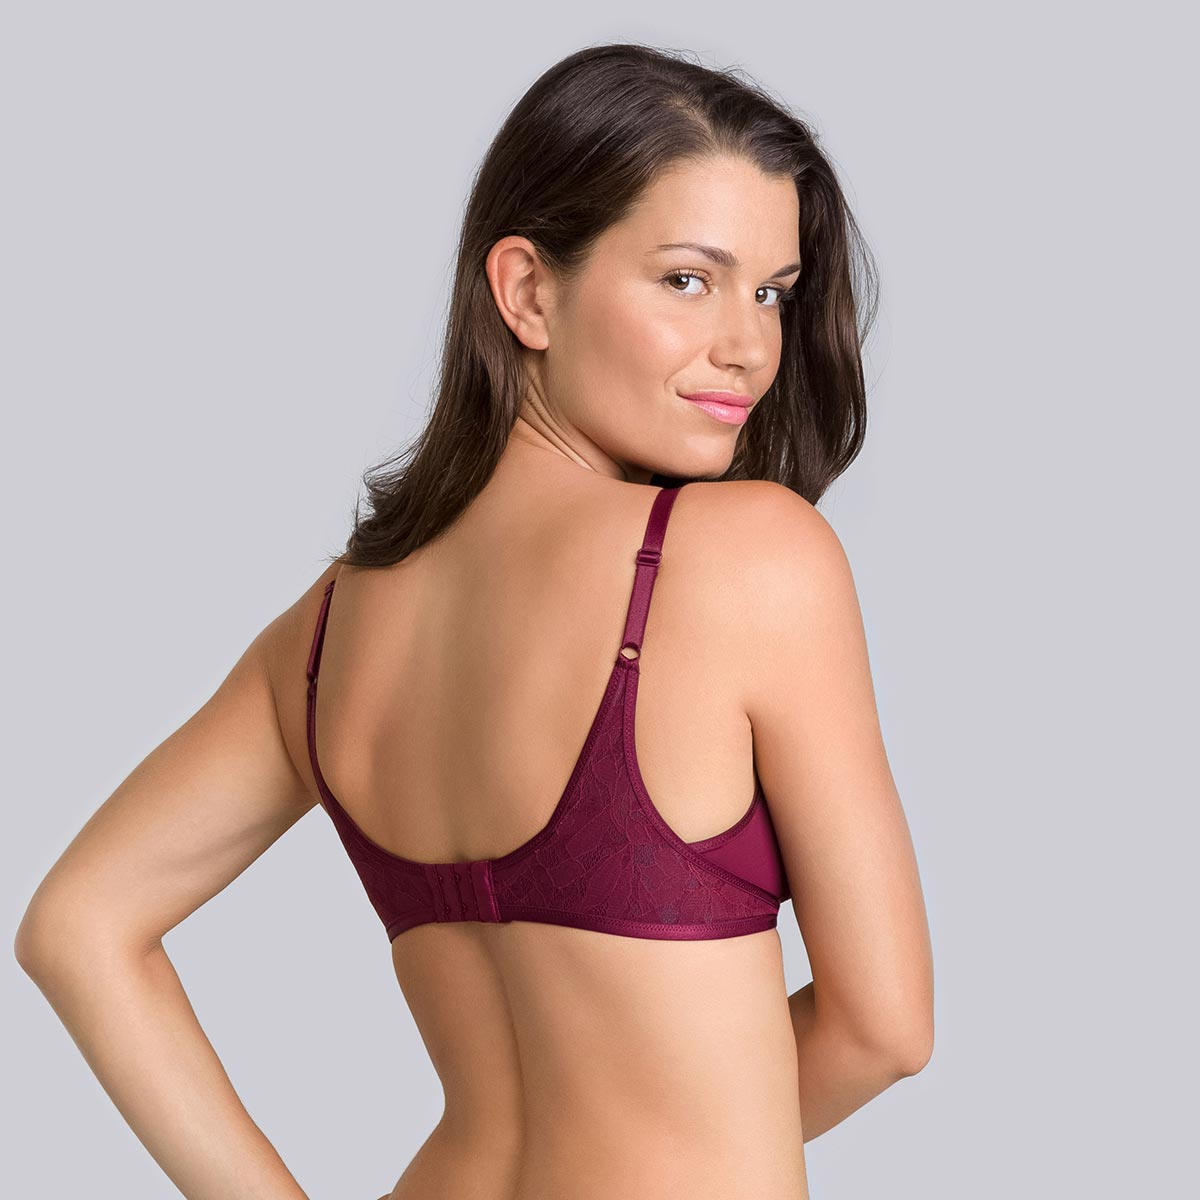 Soutien-gorge sans armatures bordeaux gris Ideal Beauty Lace-PLAYTEX